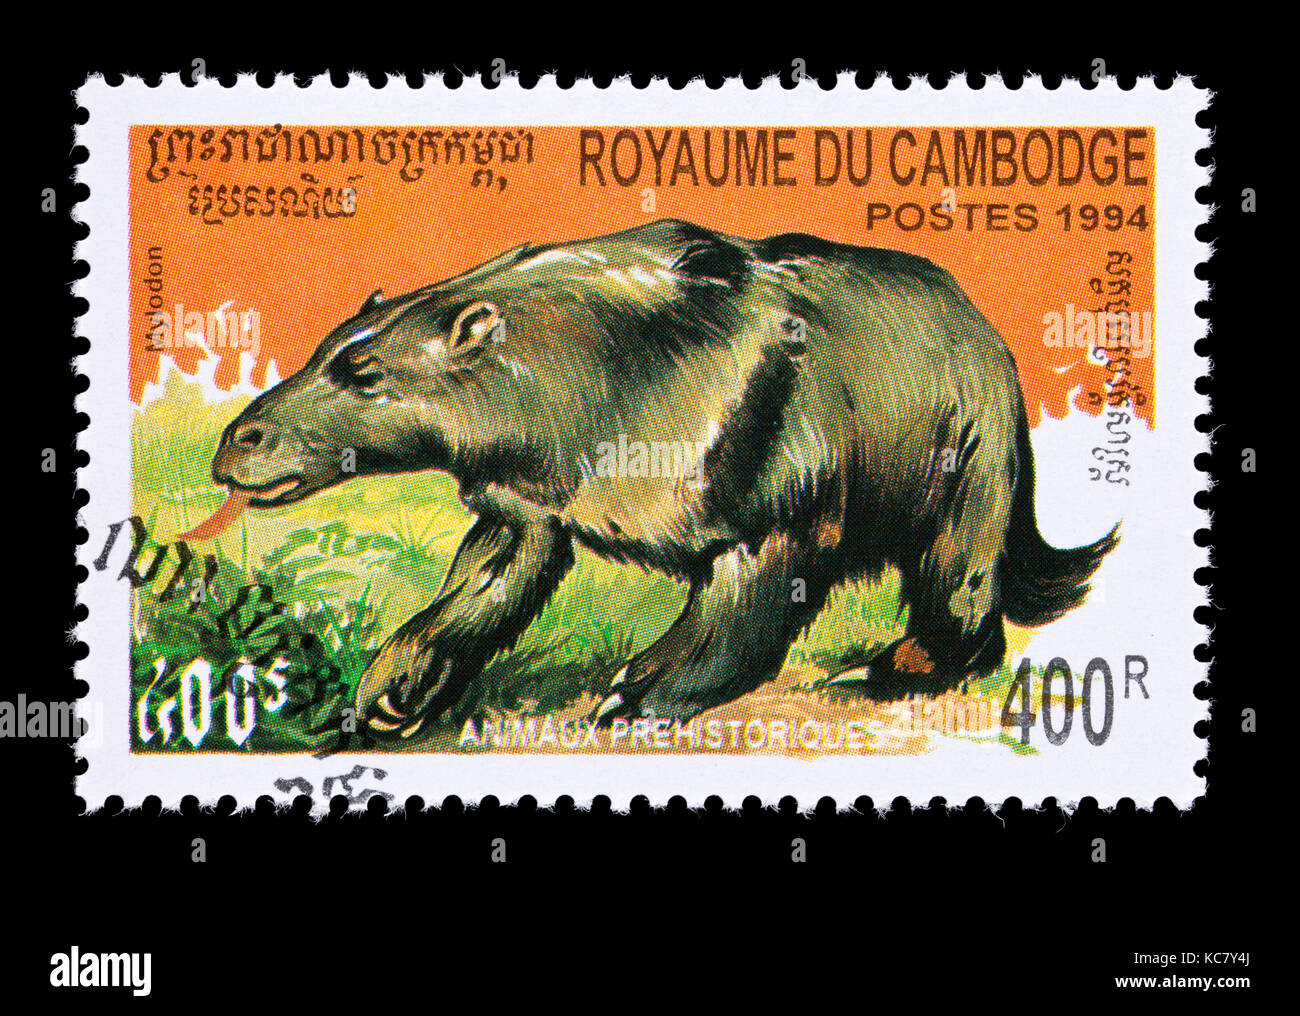 Postage stamp from Cambodia depicting a Mylodon, prehistoric extinct mammal. - Stock Image